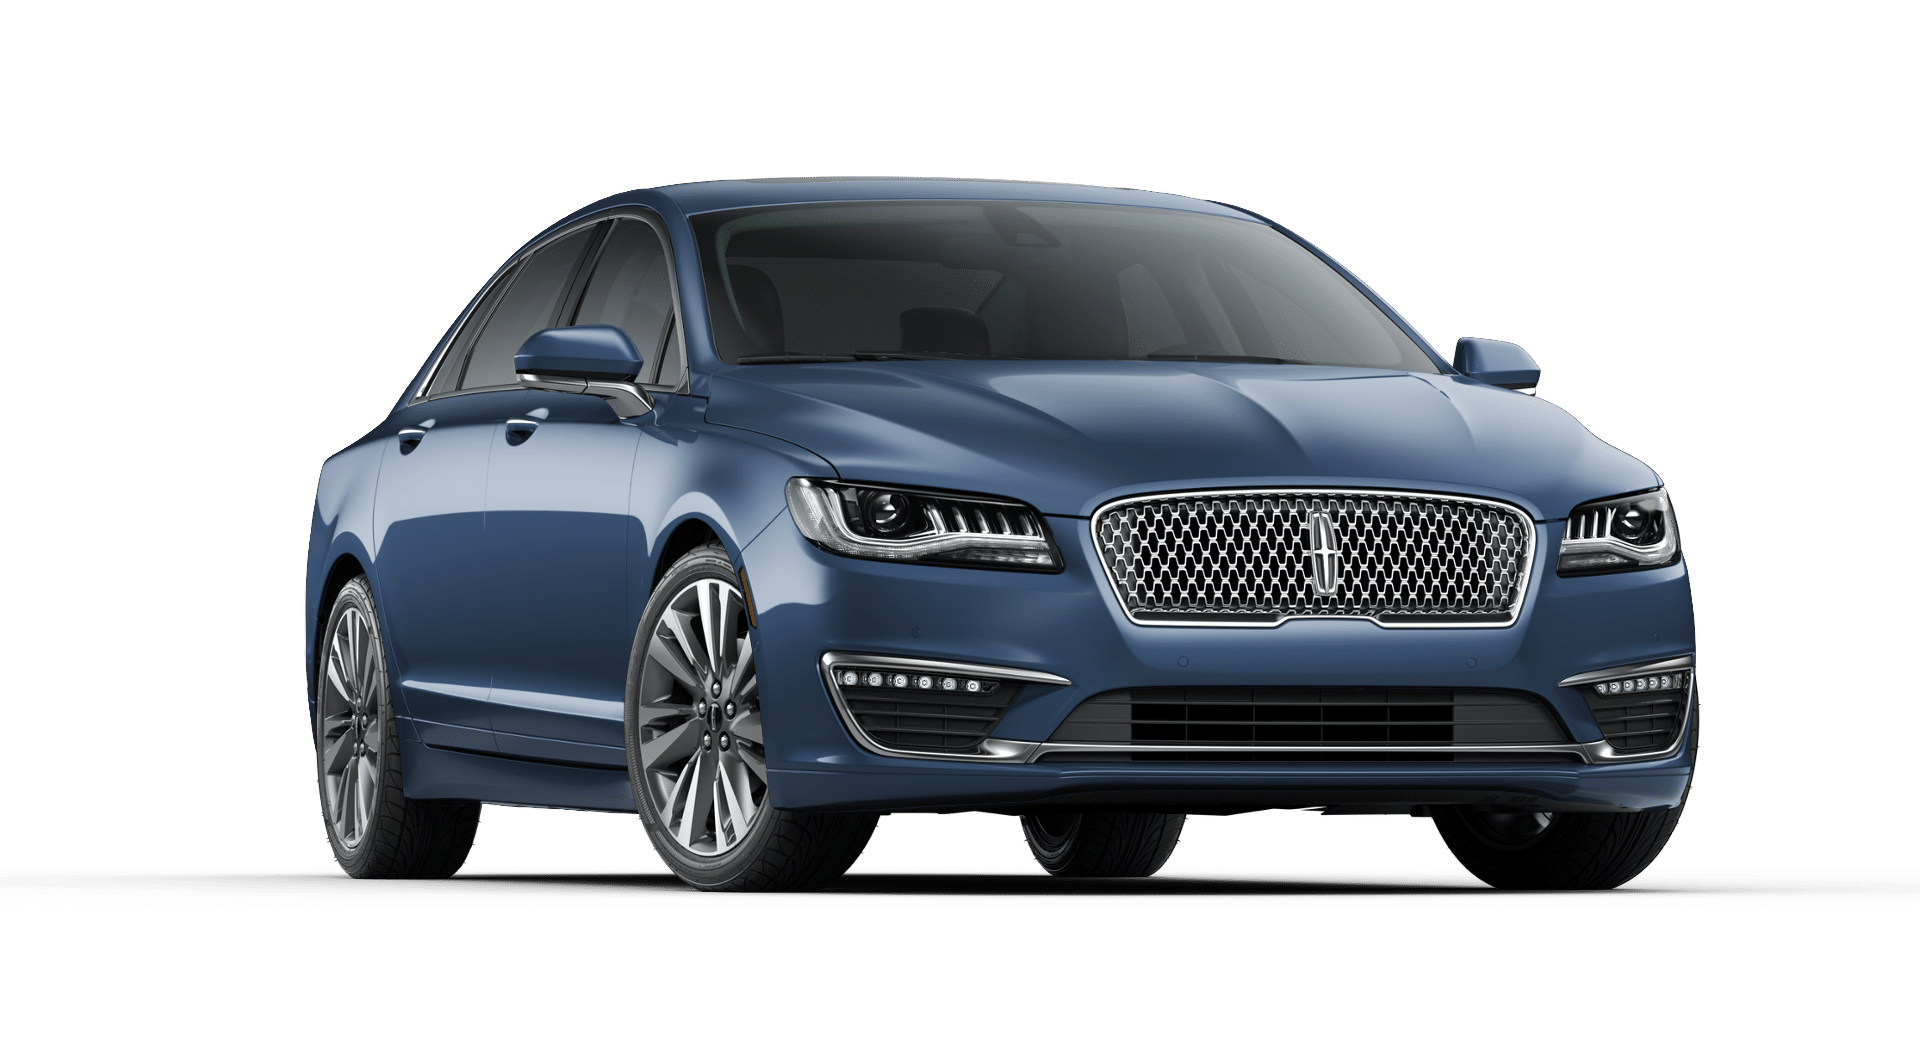 2019 Lincoln MKZ Reserve II Blue Diamond Exterior Front View.png